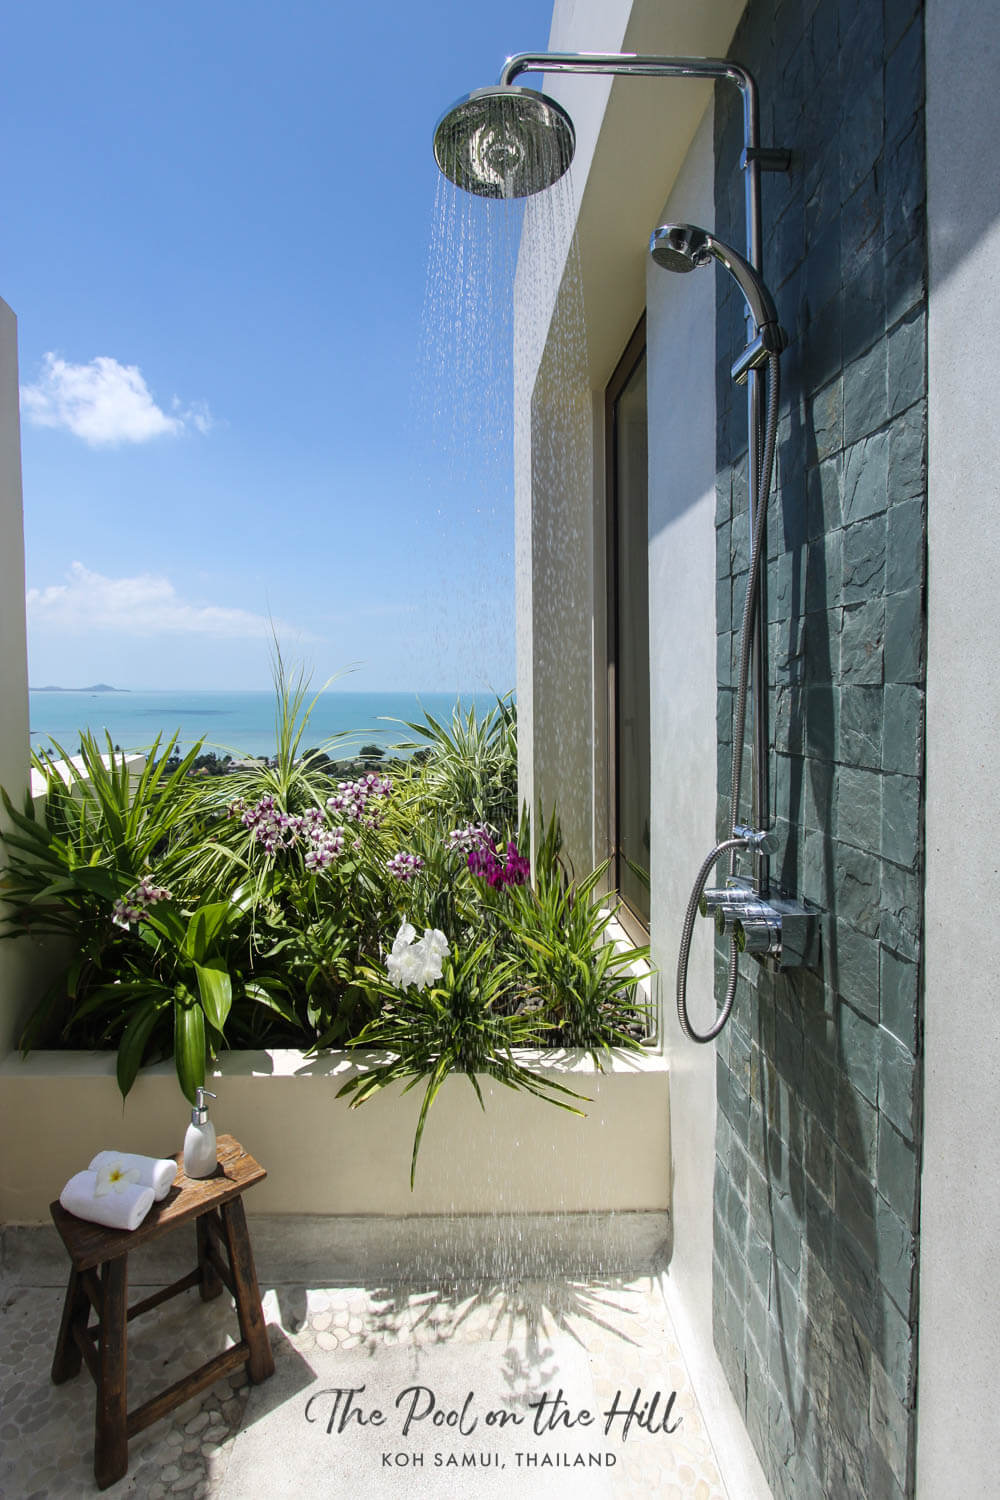 Stay at The Pool on the Hill, a Koh Samui eco villa, to enjoy a chlorine-free infinity pool, solar-heated rainwater showers, and gorgeous ocean views.